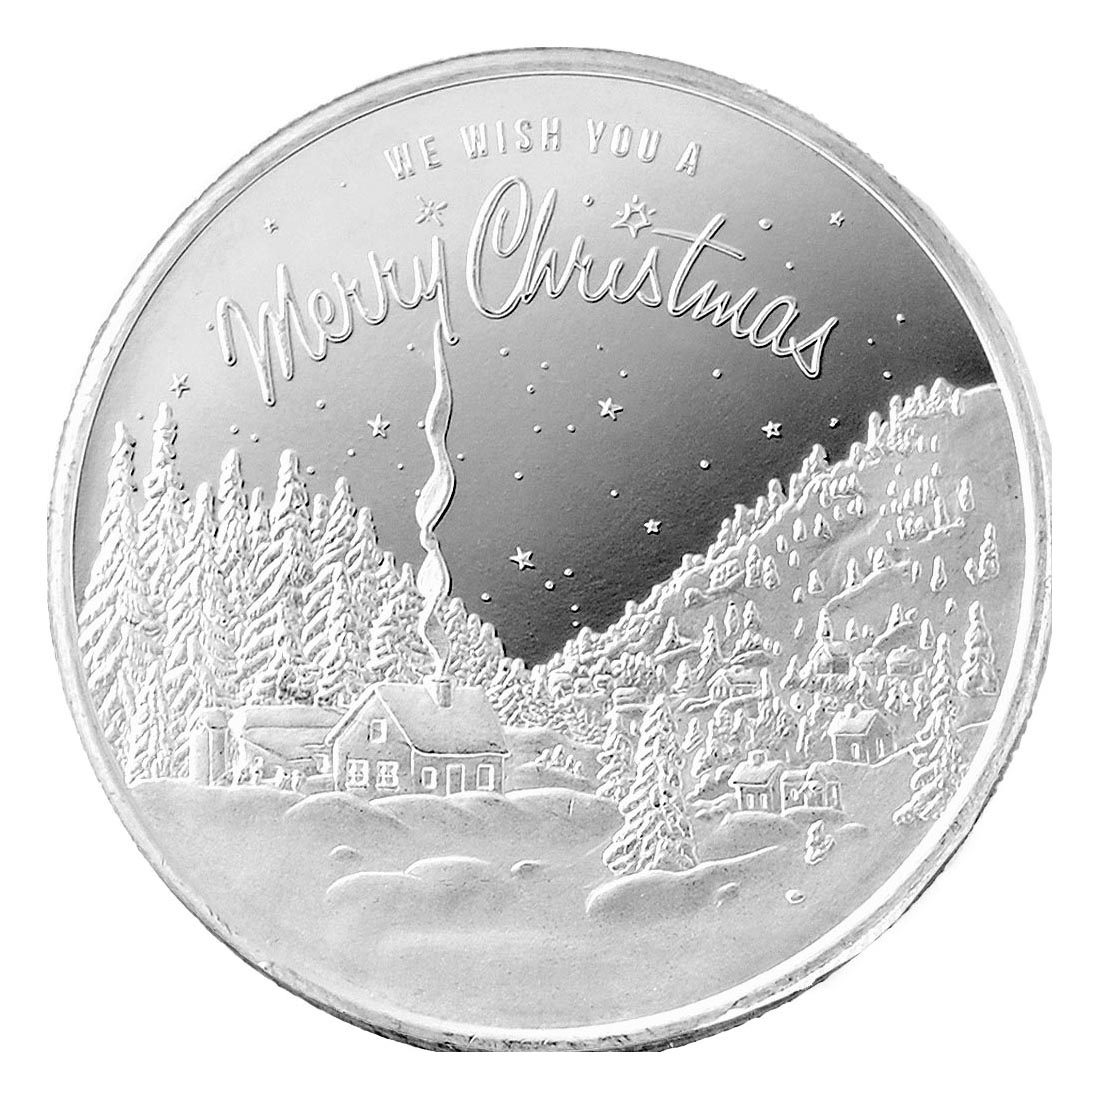 2020 Christmas in the Mountains 1oz Silver Round (D-16)